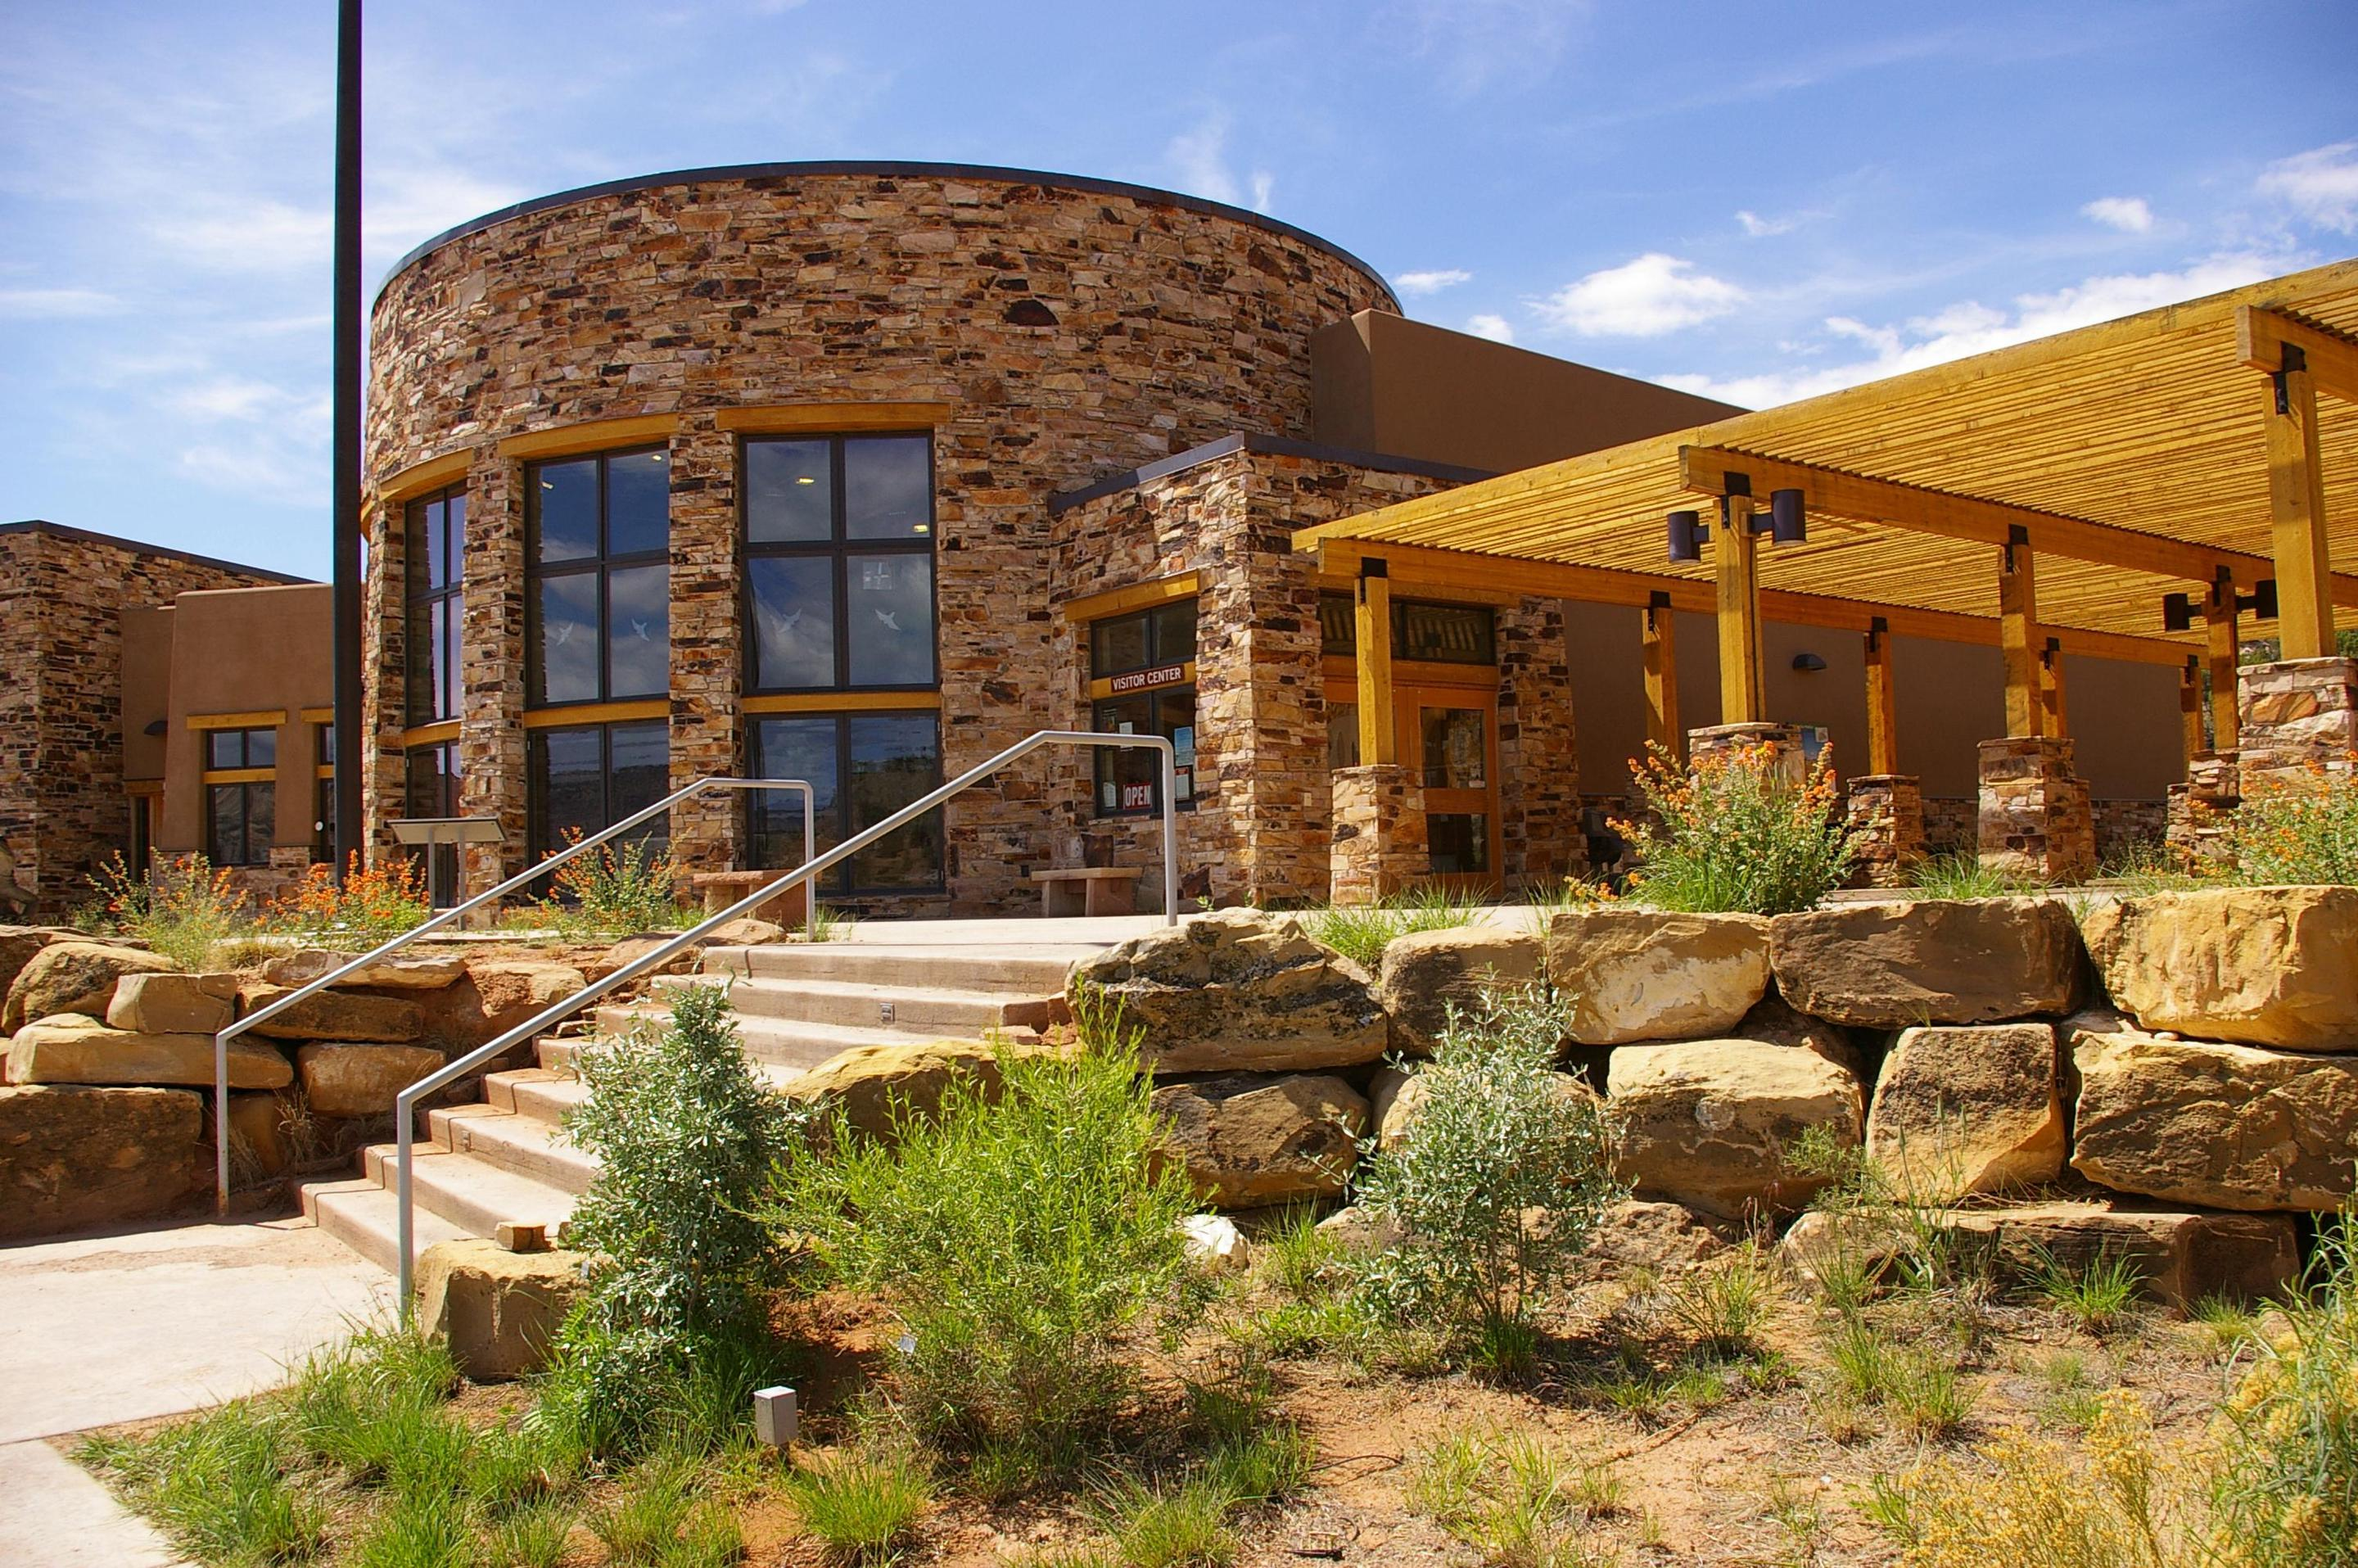 Escalante Interagency Visitor Center ExteriorThe Escalante Interagency Visitor Center is a one-stop shop for information about Glen Canyon National Recreation Area, Dixie National Forest, and Grand Staircase-Escalante National Monument,